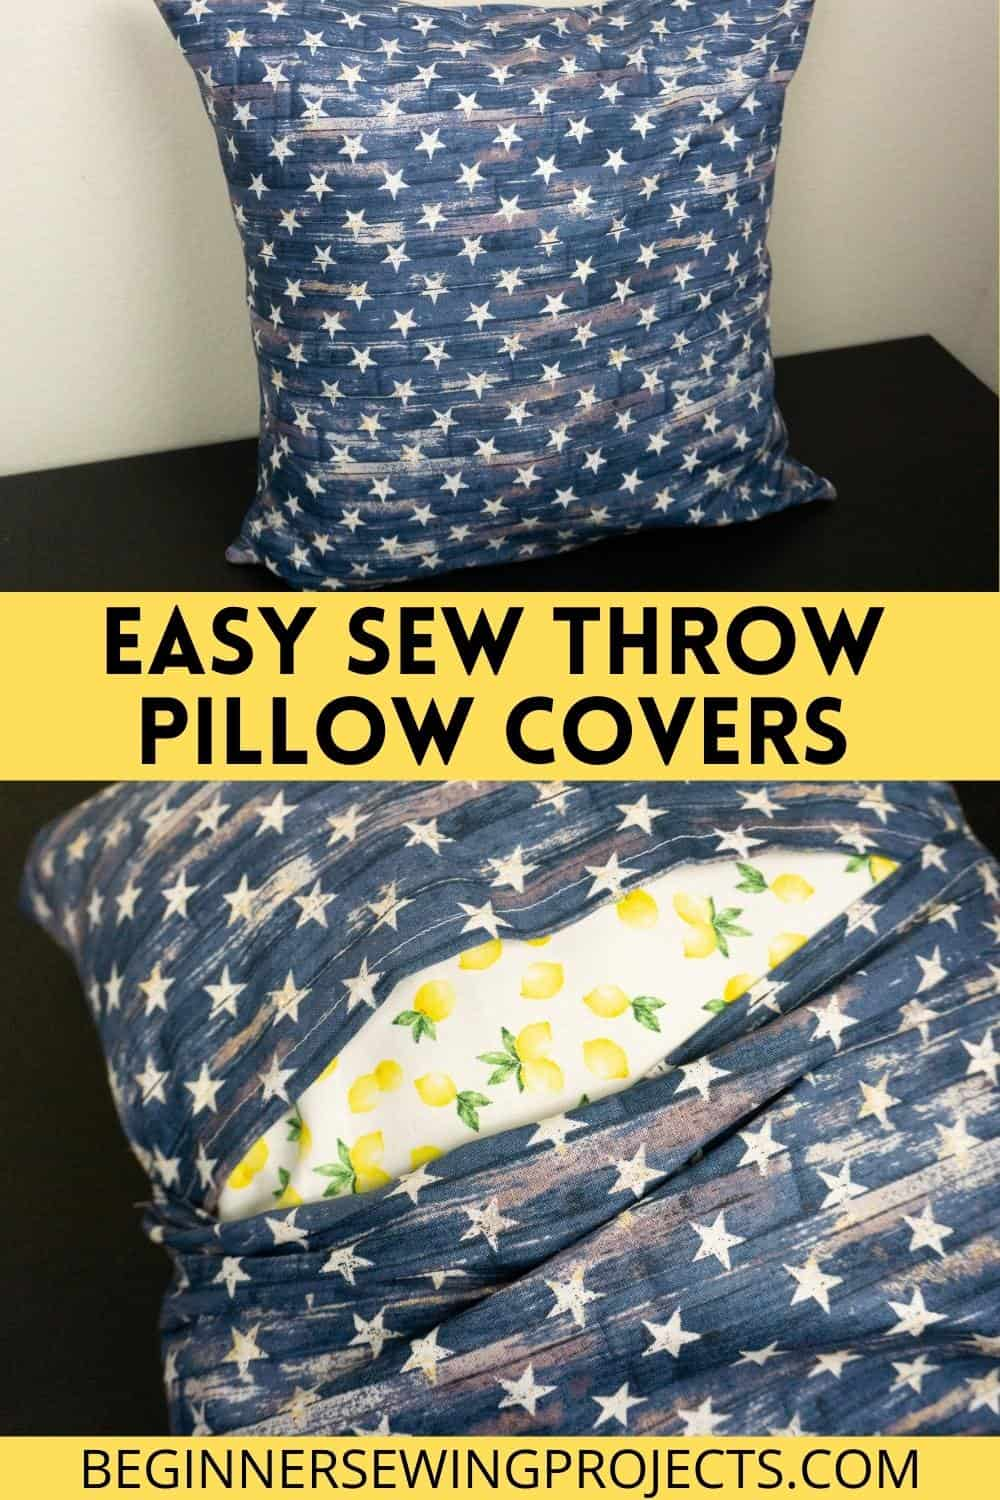 Easy Sew Throw Pillow Covers